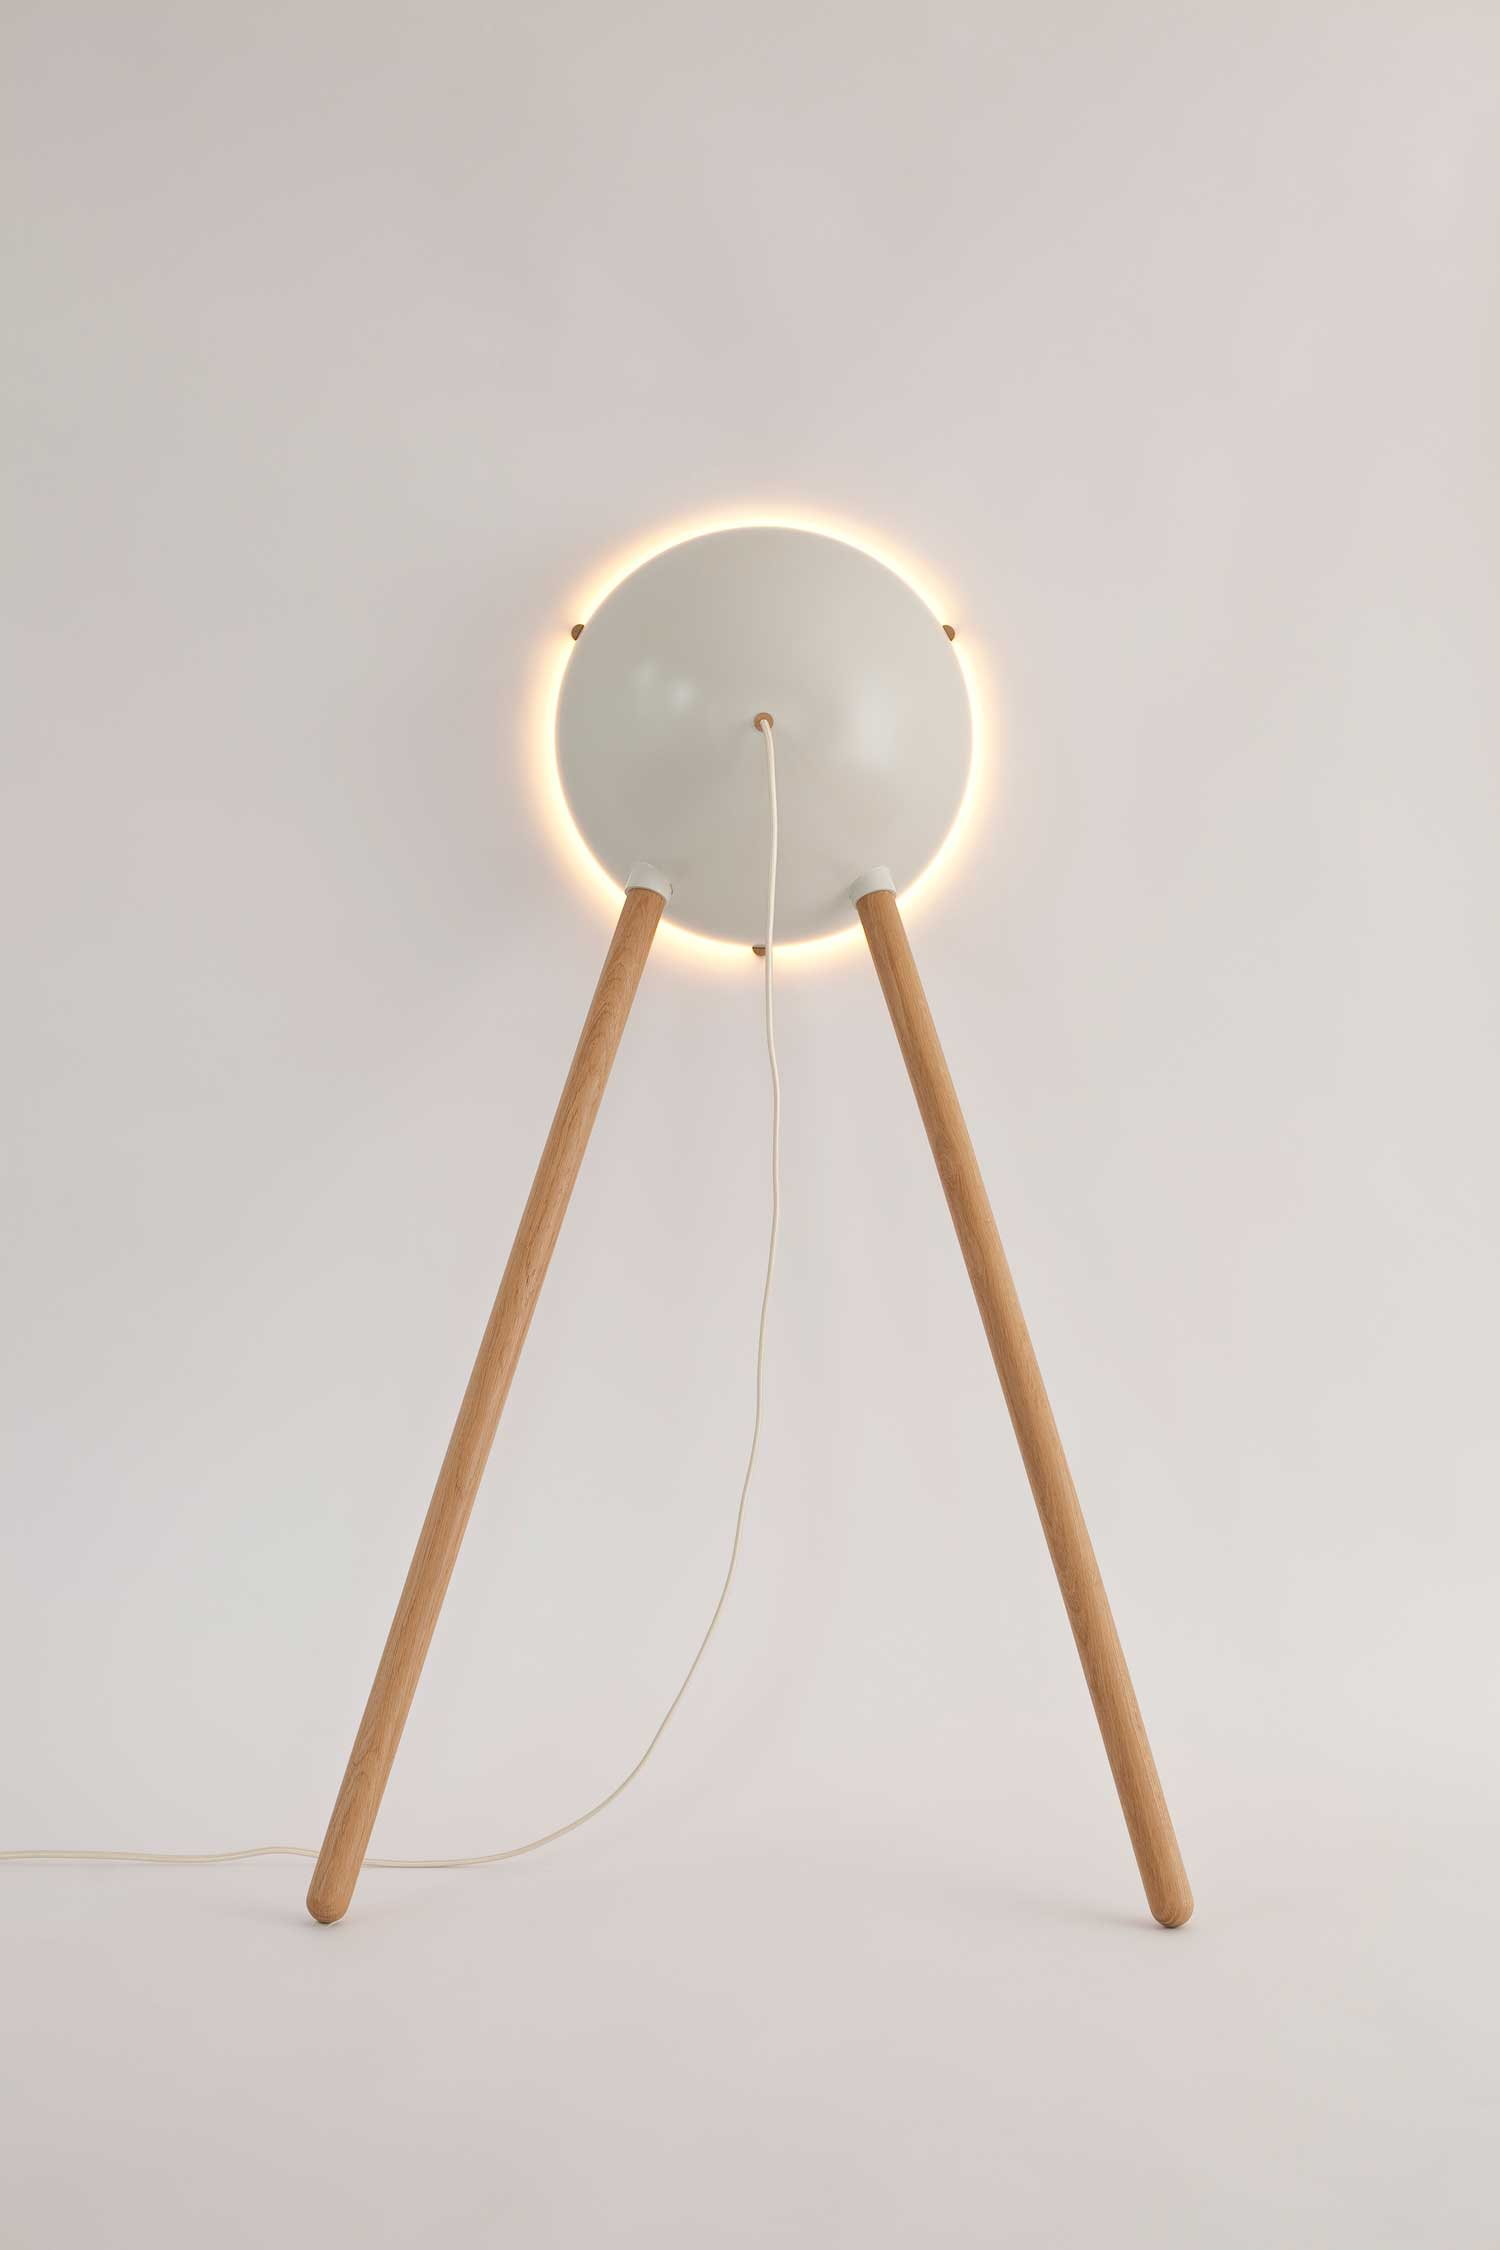 Cirkel leaning lamp by Daphna Laurens | Yellowtrace